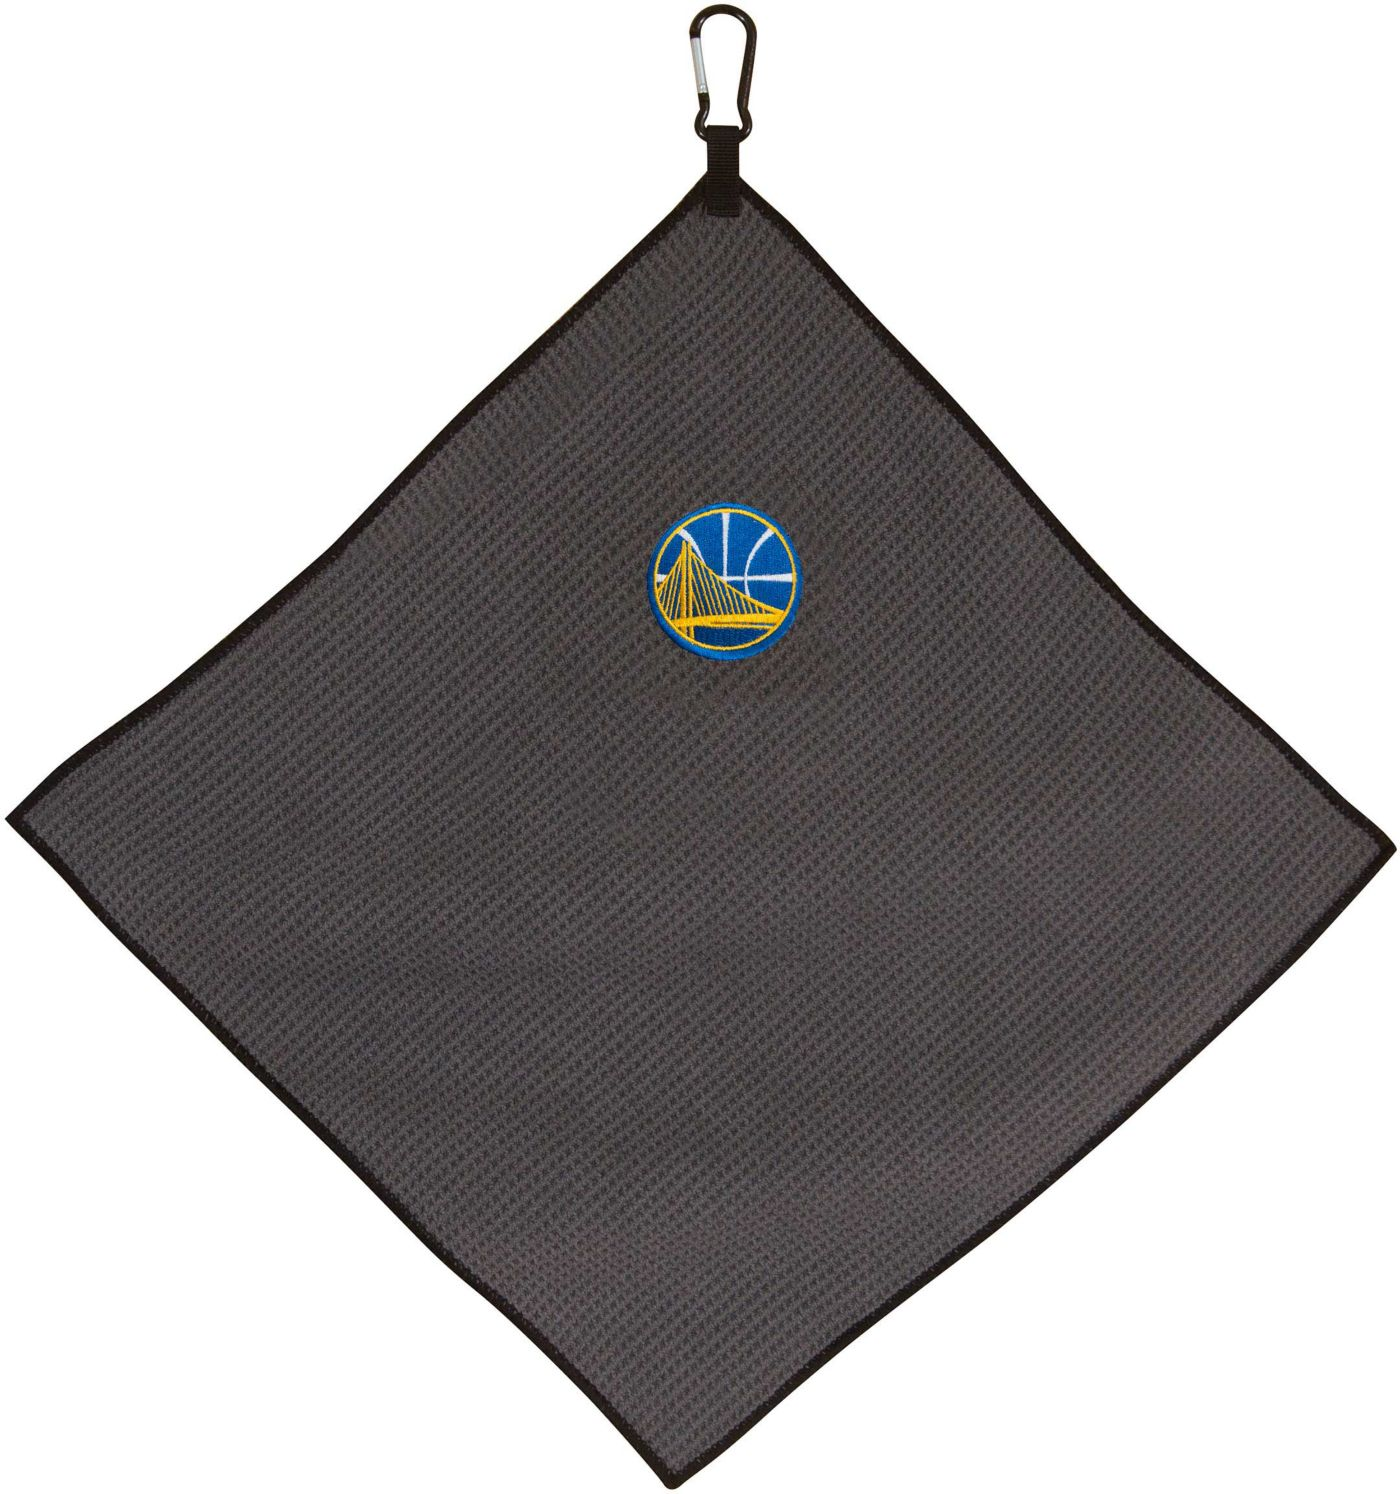 "Team Effort Golden State Warriors 15"" x 15"" Microfiber Golf Towel"